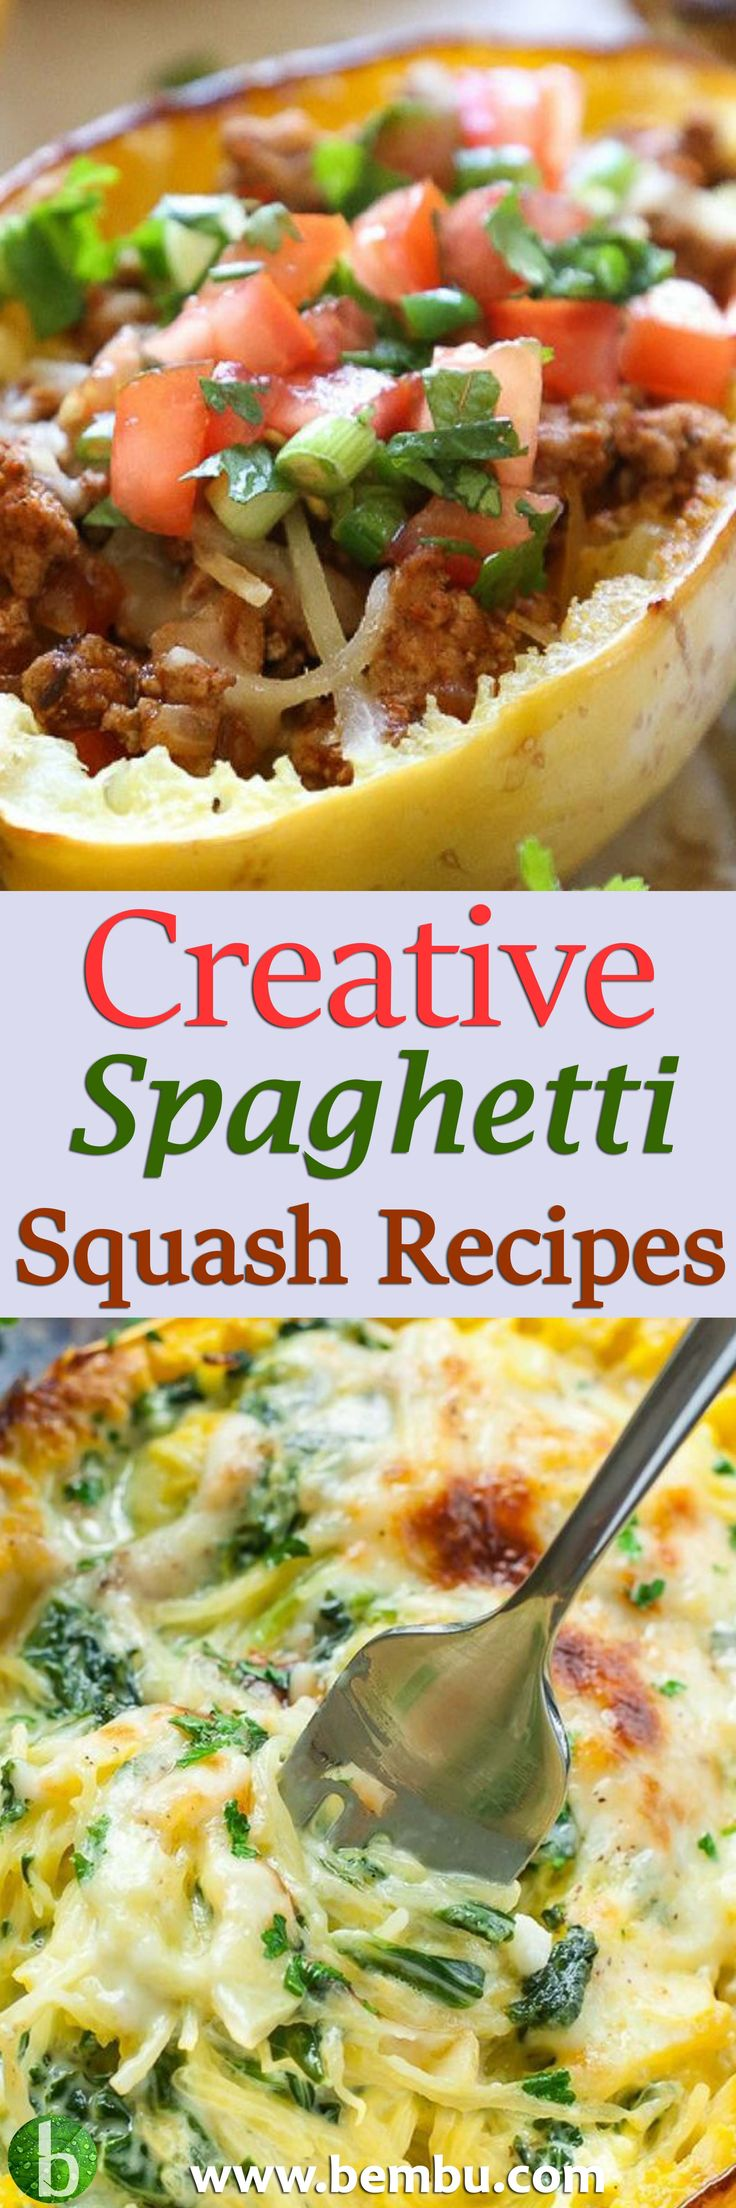 Looking for a healthier pasta alternative? Try spaghetti squash! Find out the benefits of eating this humble veggie. Plus, 20 creative spaghetti squash recipes! Health Tips │ Health Ideas │Healthy Food │Health │Food │Desserts │Low Carb │Favourite Recipes │Gluten Free │Breakfast #Health #Ideas #Tips #Vitamin #Healthyfood #Food #Desserts #Lowcarb #Recipes #Glutenfree #Breakfast